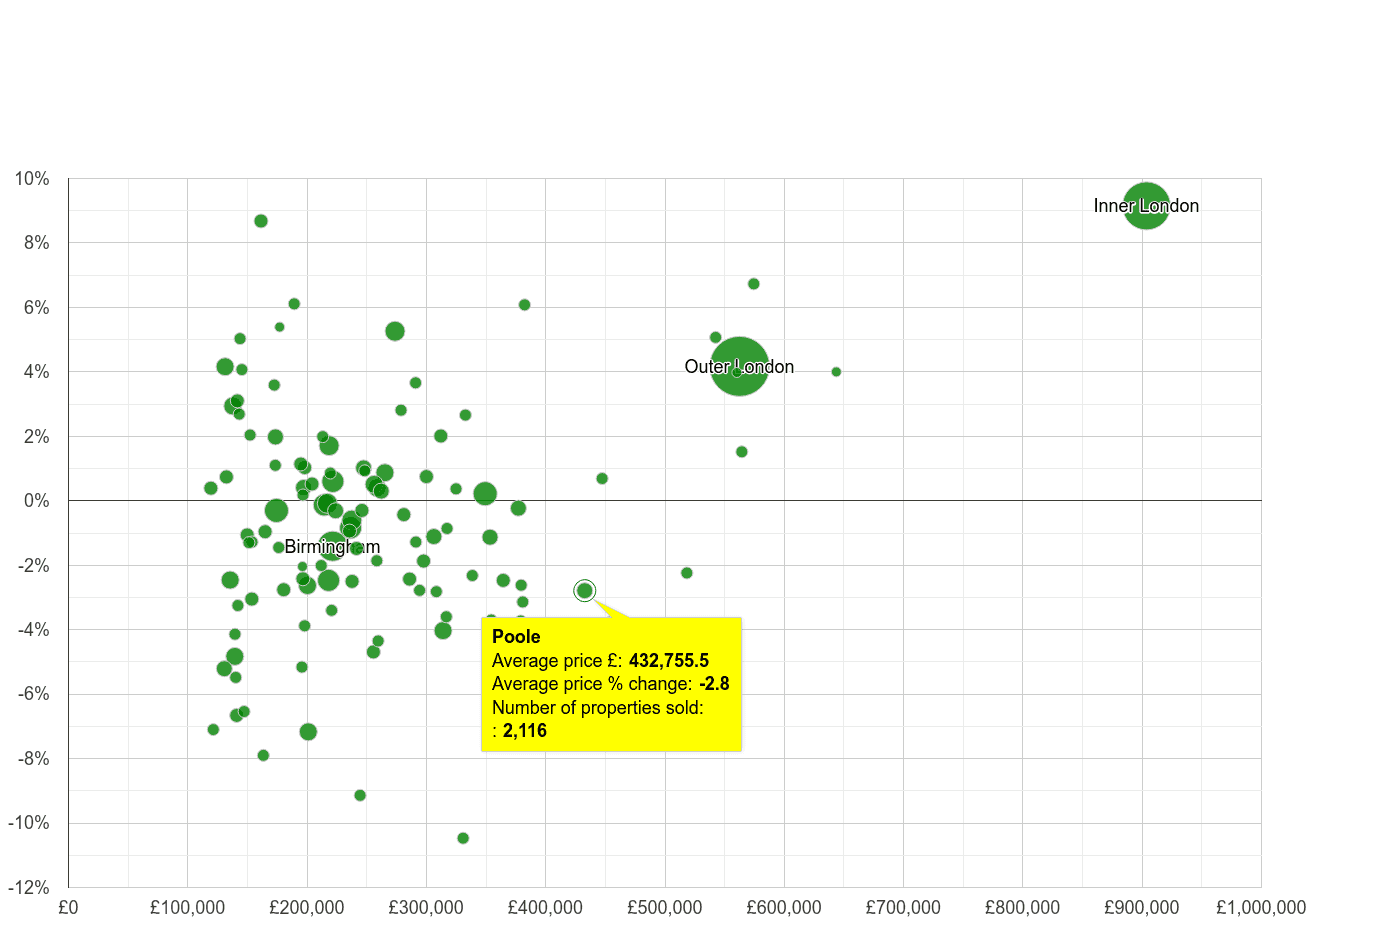 Poole house prices compared to other cities